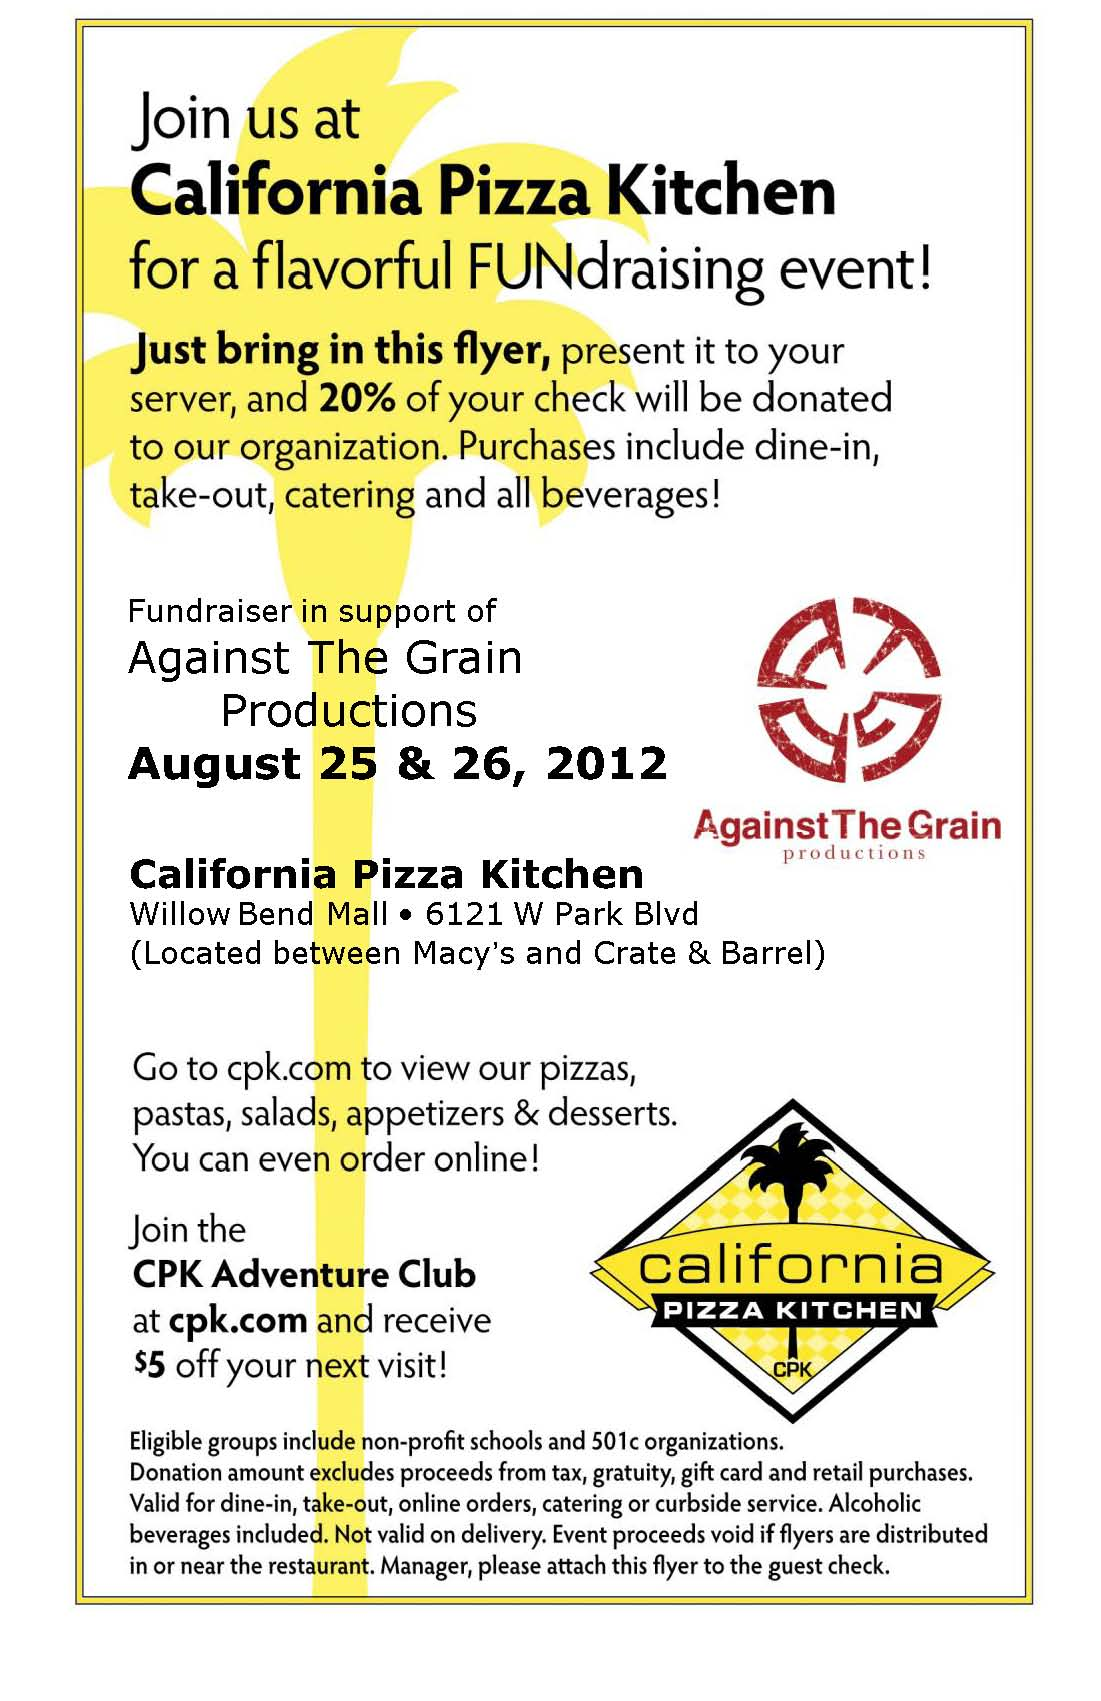 California Pizza Kitchen – Against The Grain Productions